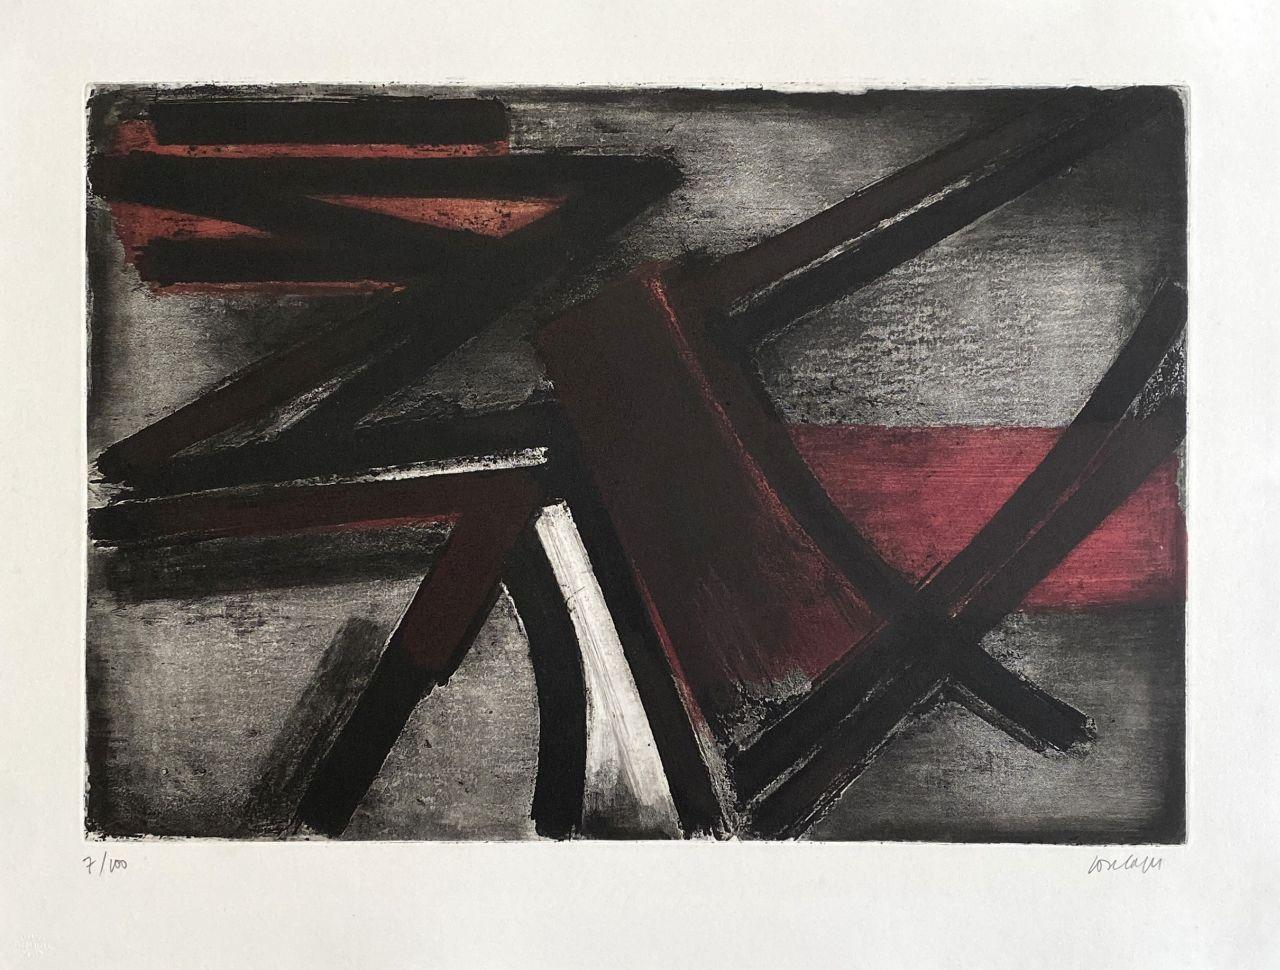 Eau forte 2 - Original Etching Hand Signed and Numbered (BNF #2)